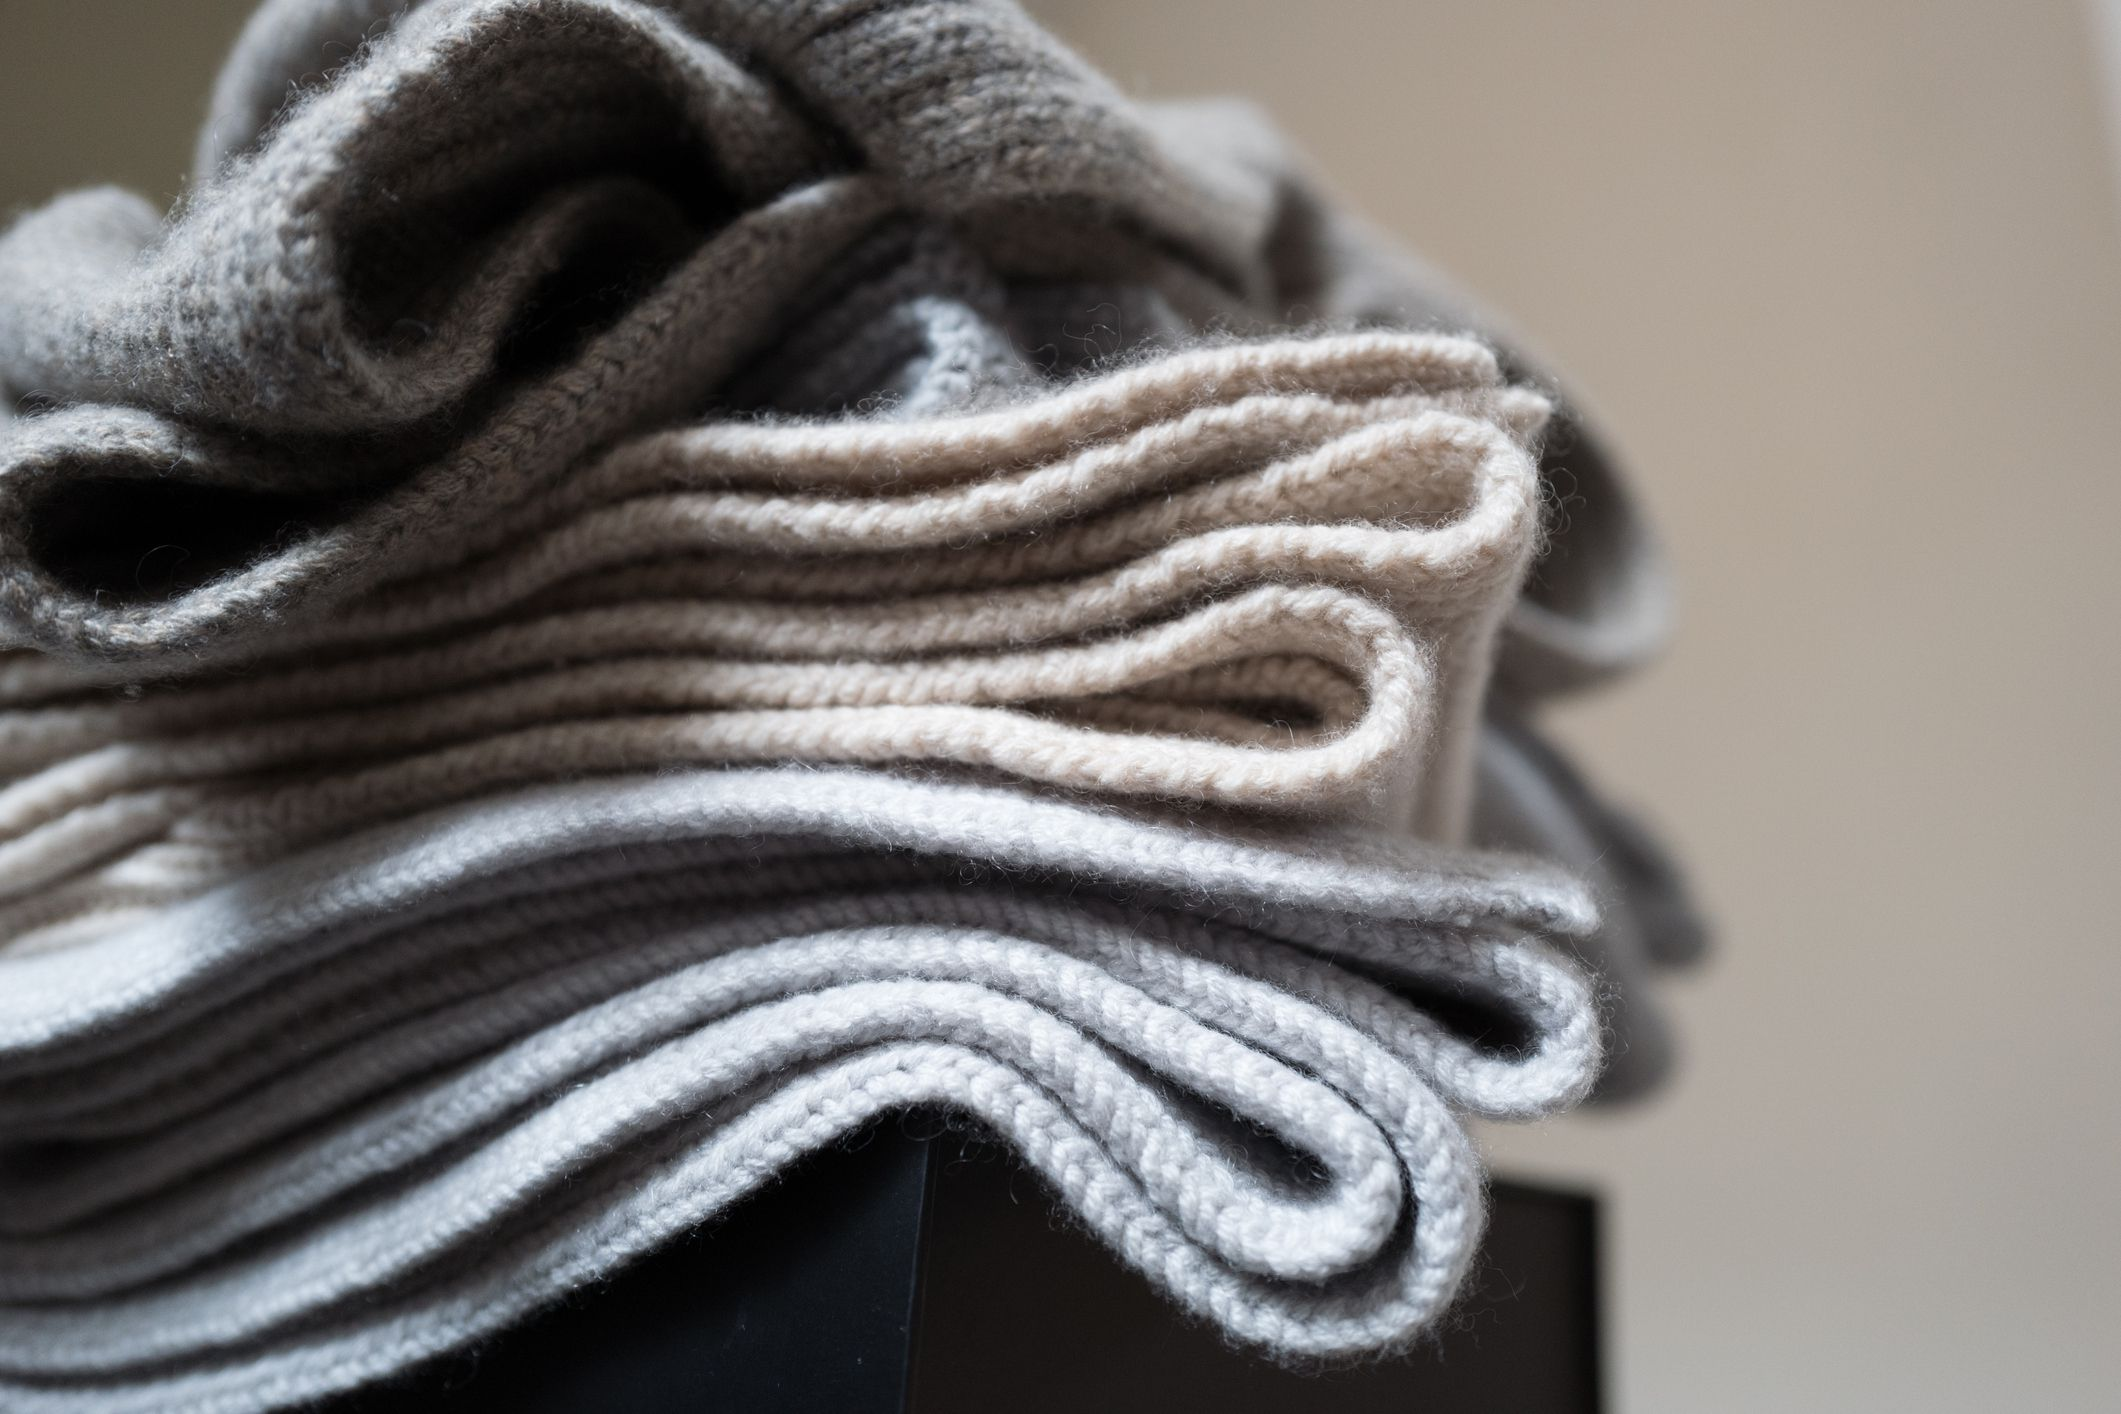 How To Wash Wool Blankets